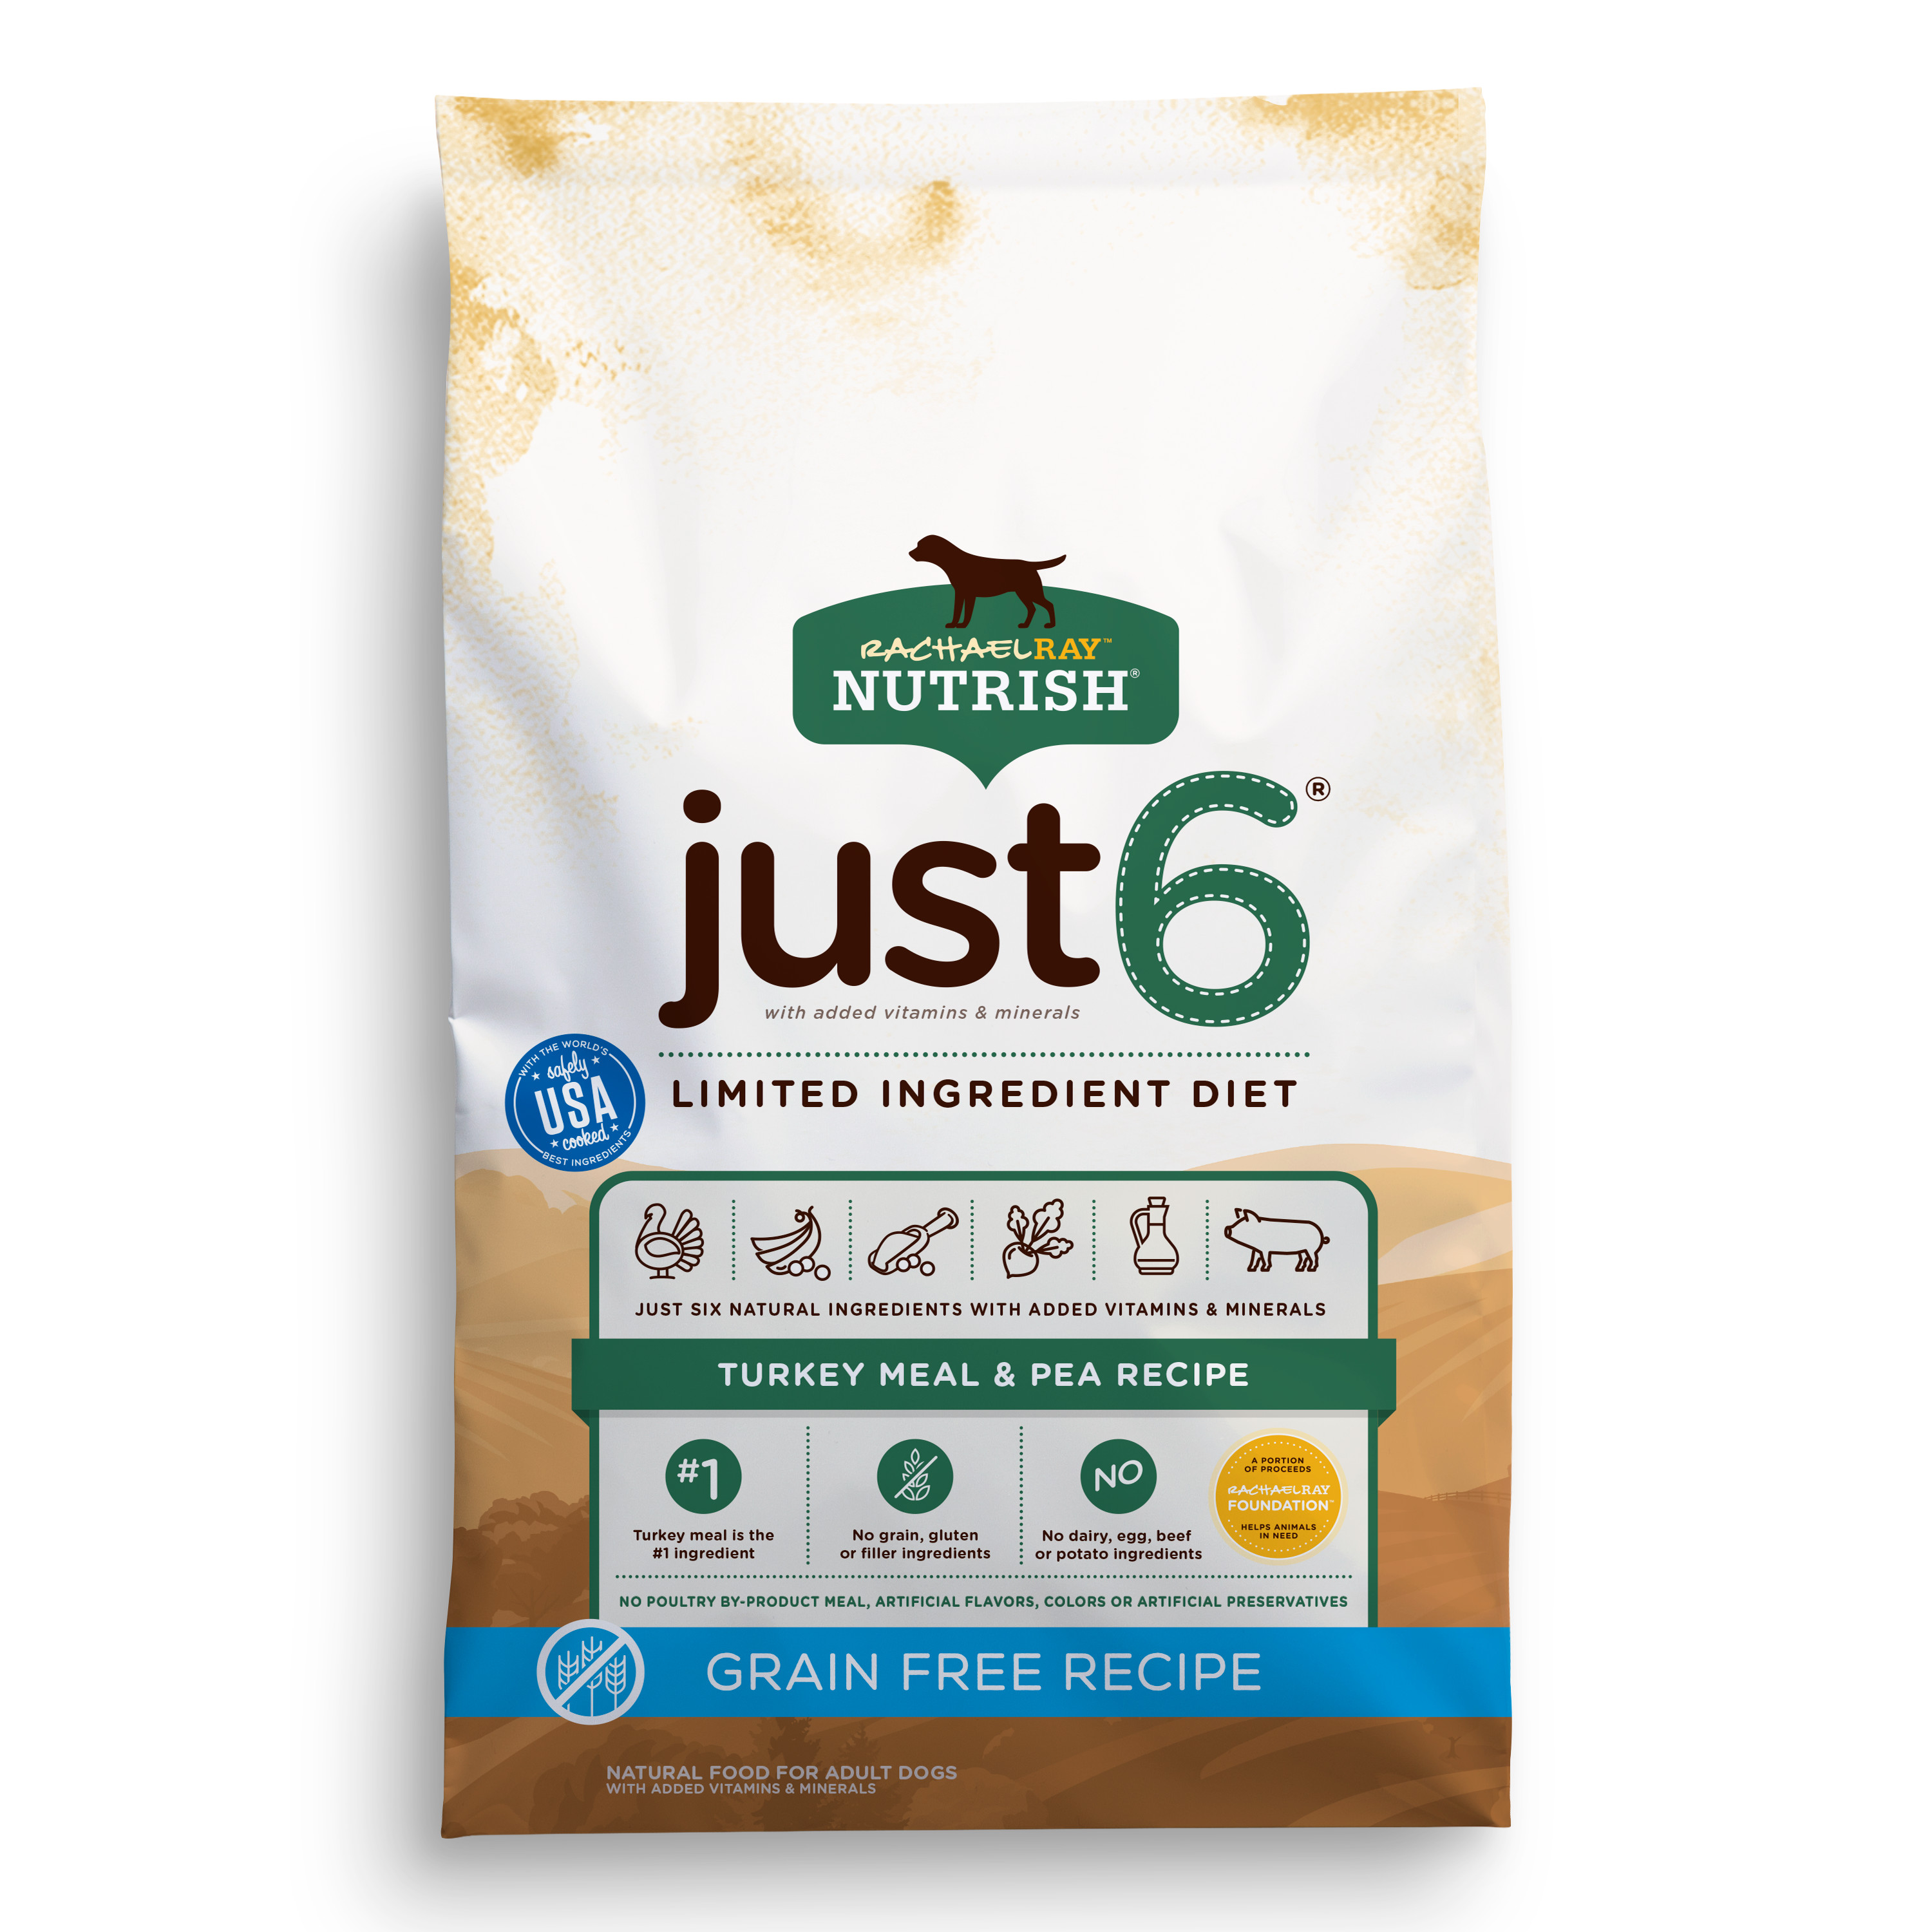 Rachael Ray Nutrish Just 6 Natural Dry Dog Food, Grain Free Turkey Meal & Pea Limited Ingredient Diet, 12 lbs